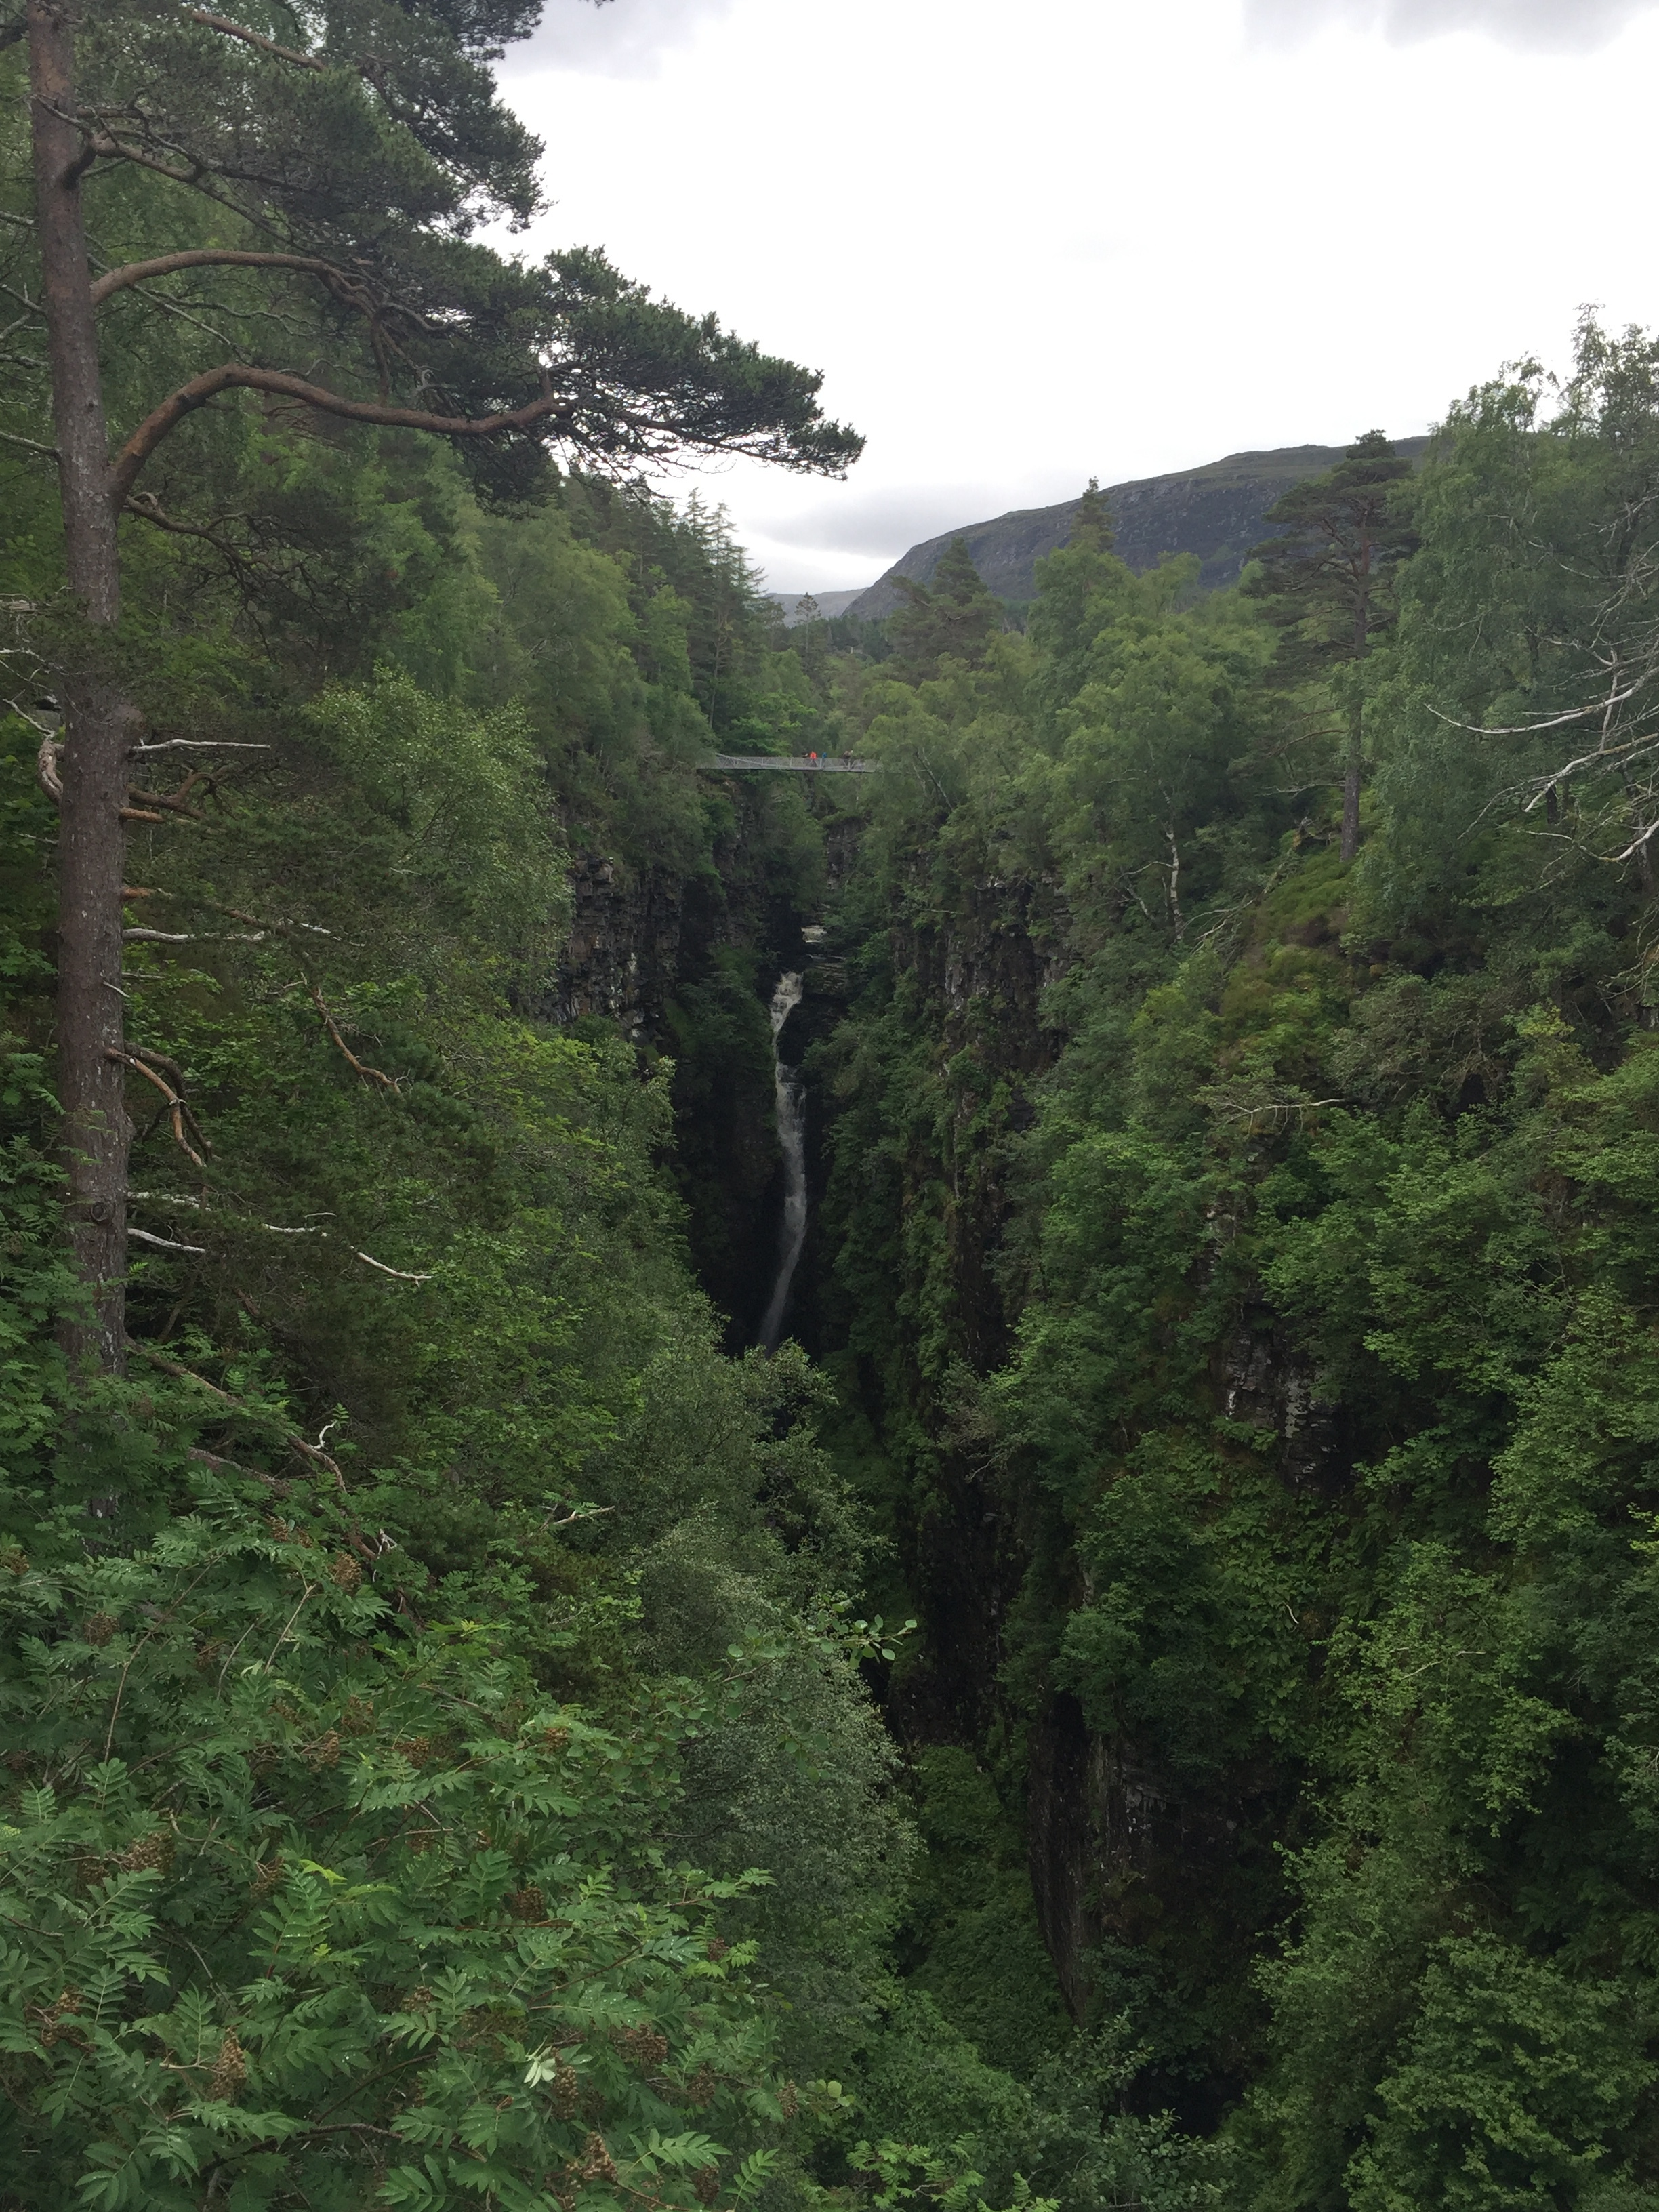 A view of the suspension bridge and the waterfall.